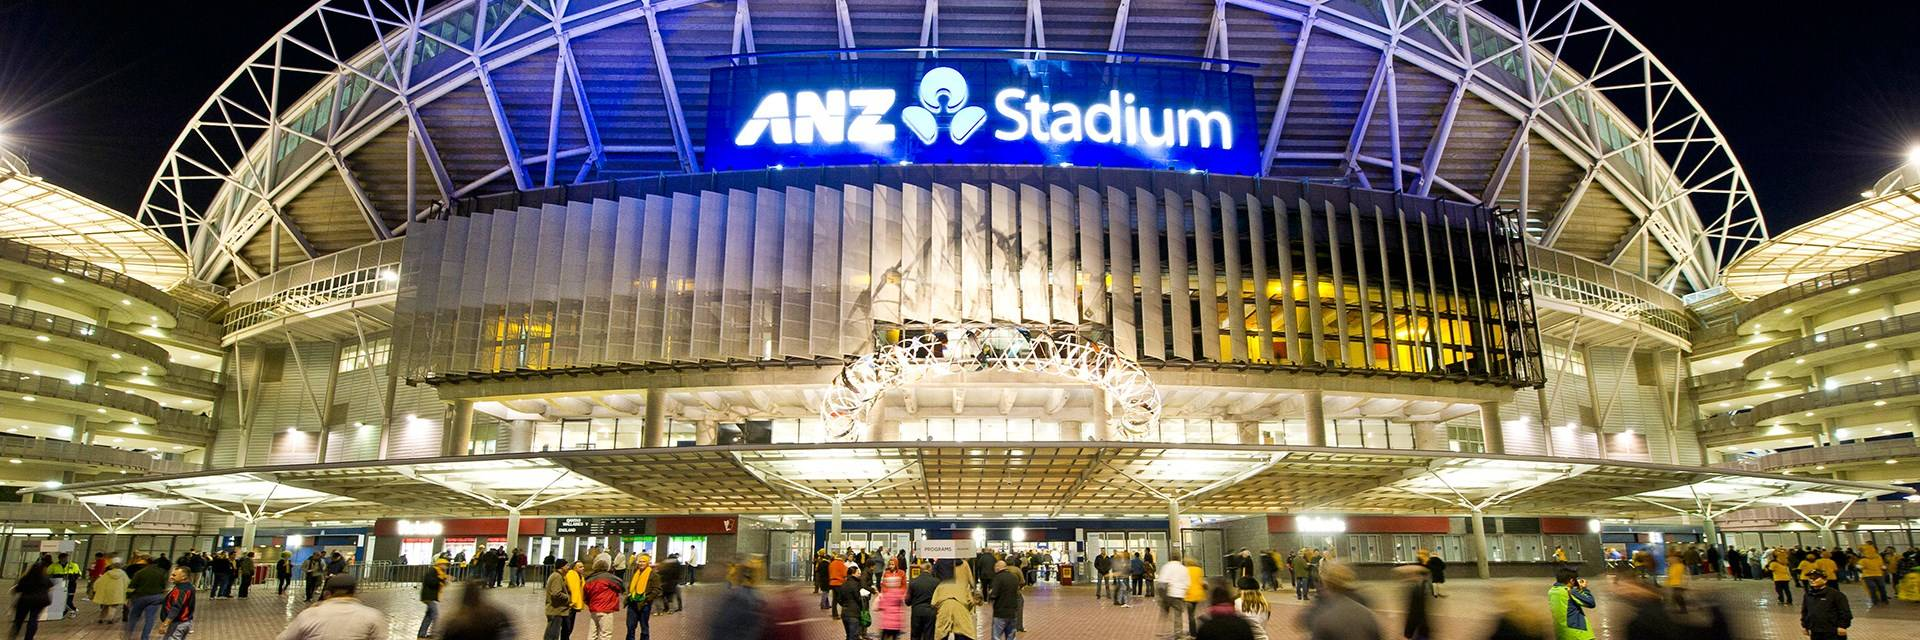 ANZ stadium - stadium at night with crowds - photo by Paul K Robbins